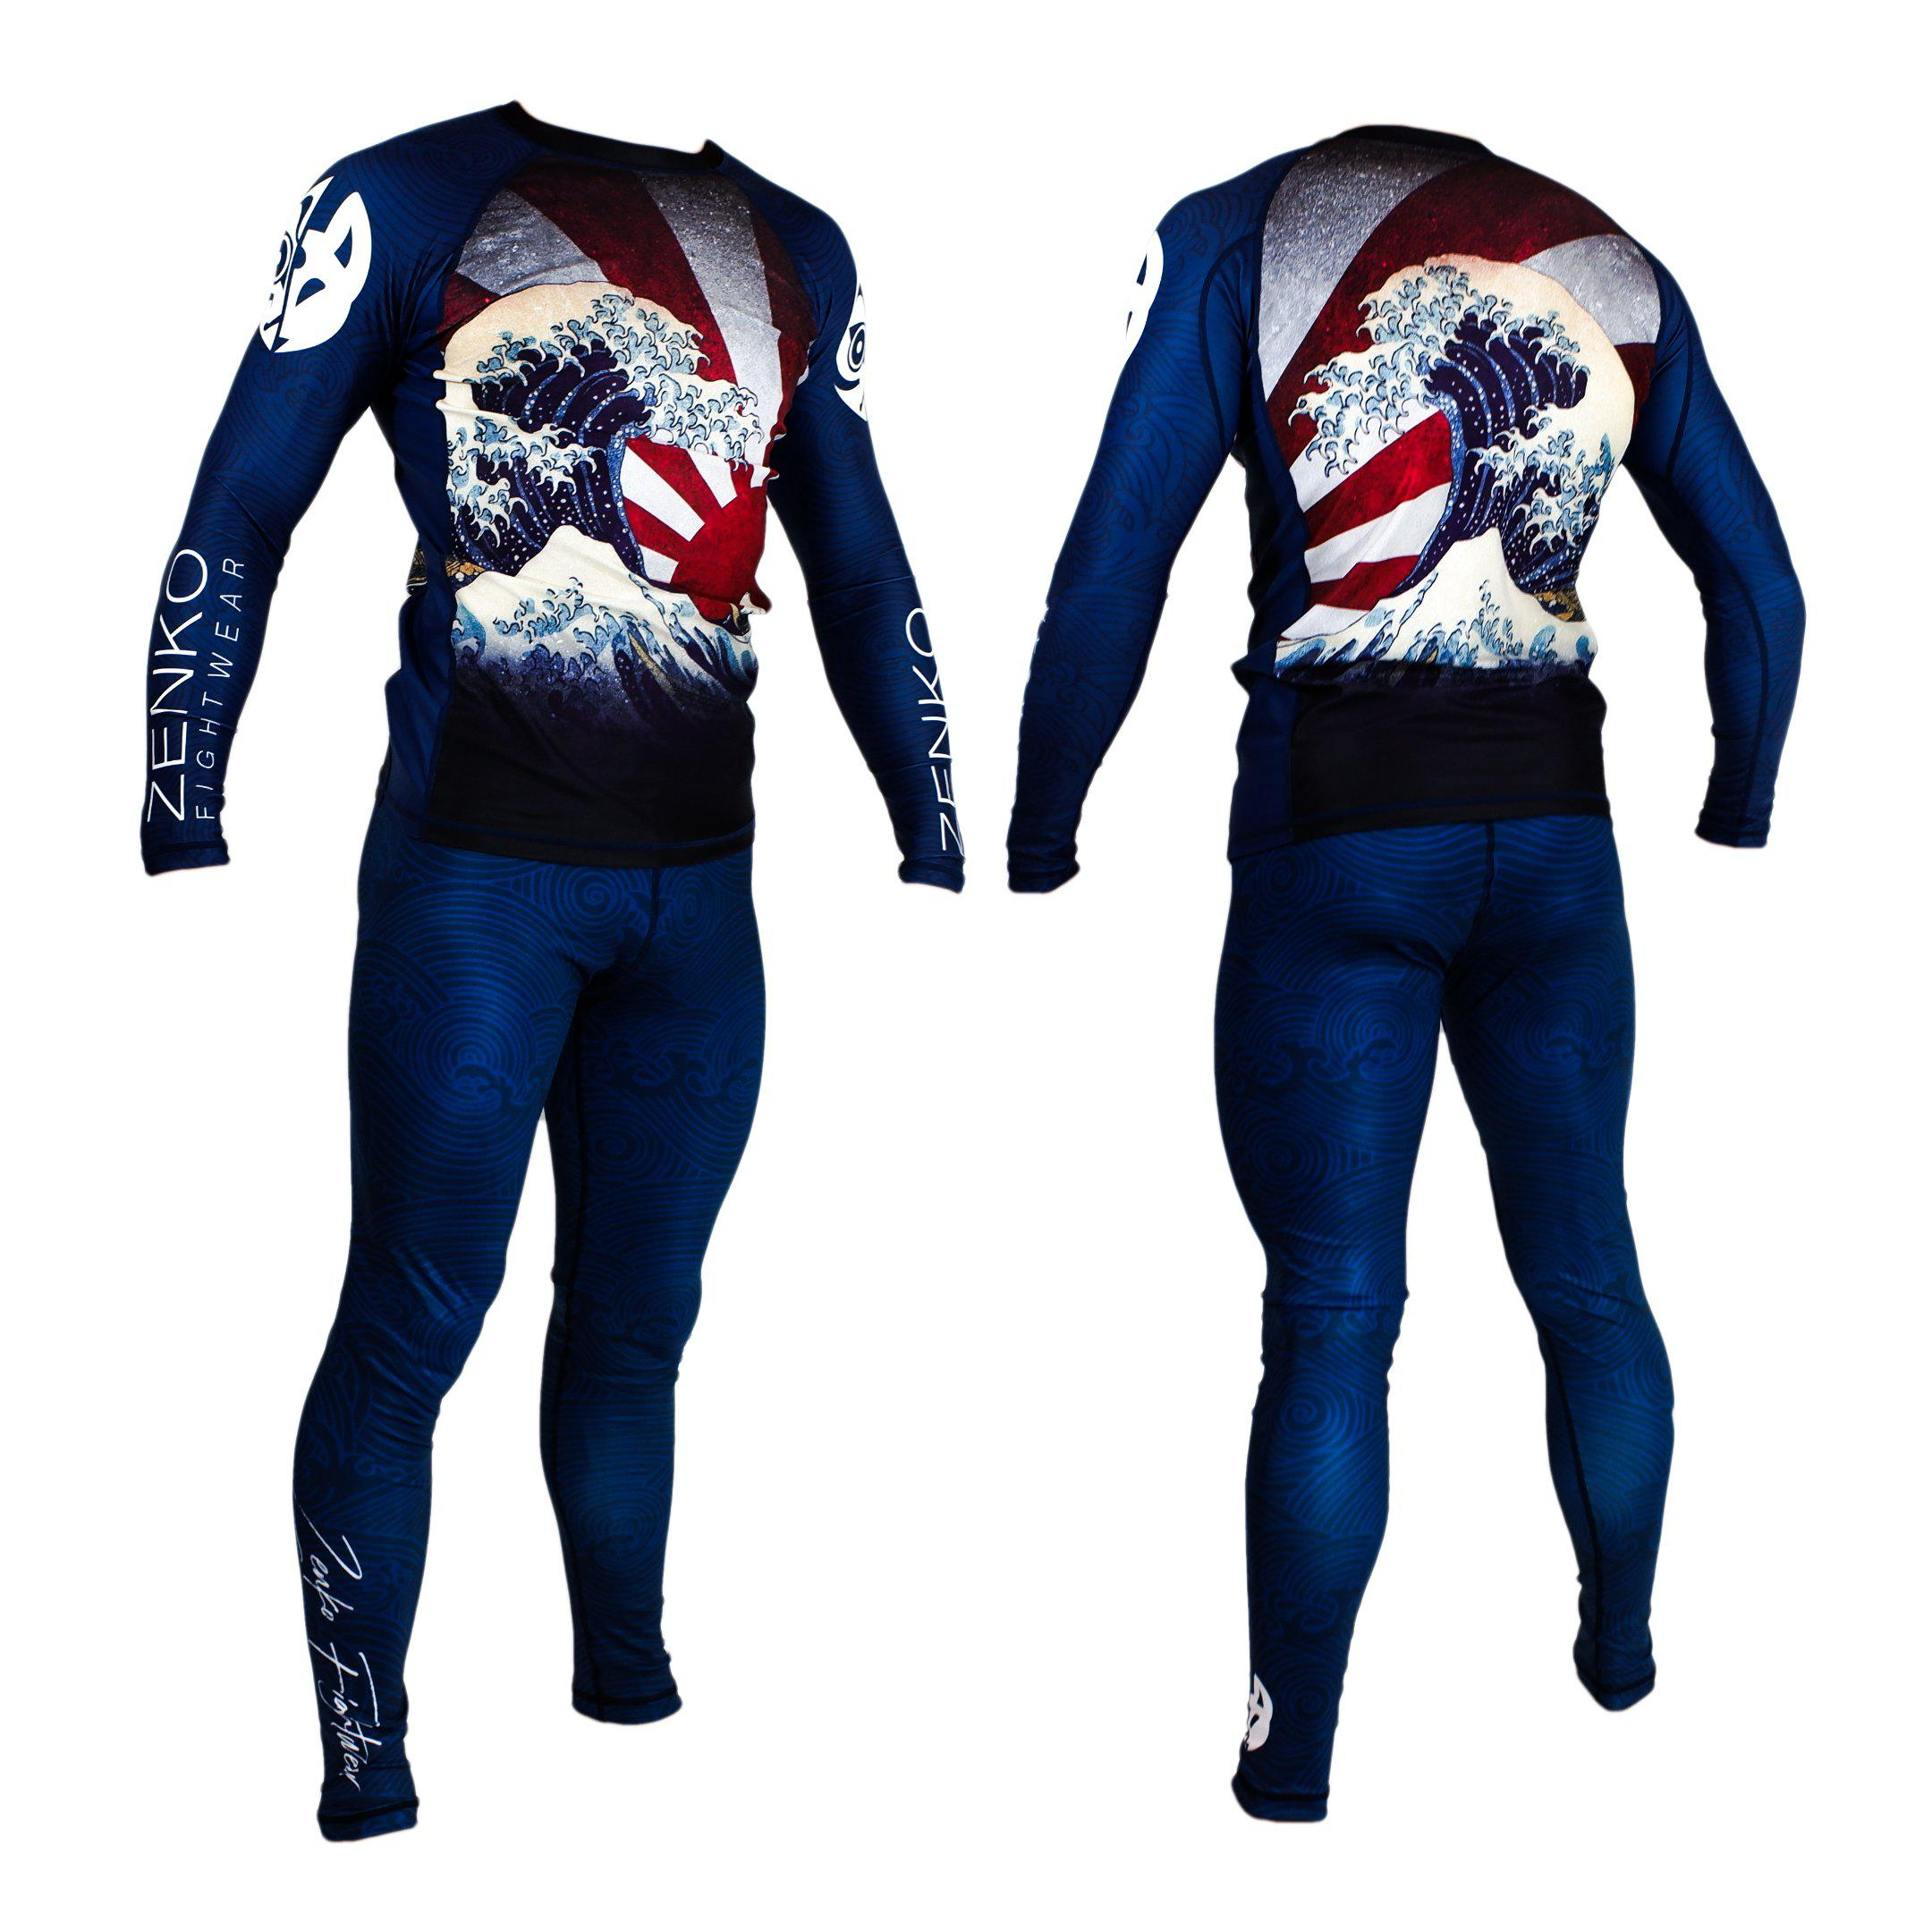 Zenko Fightwear The Great Wave Rashguard & Spats